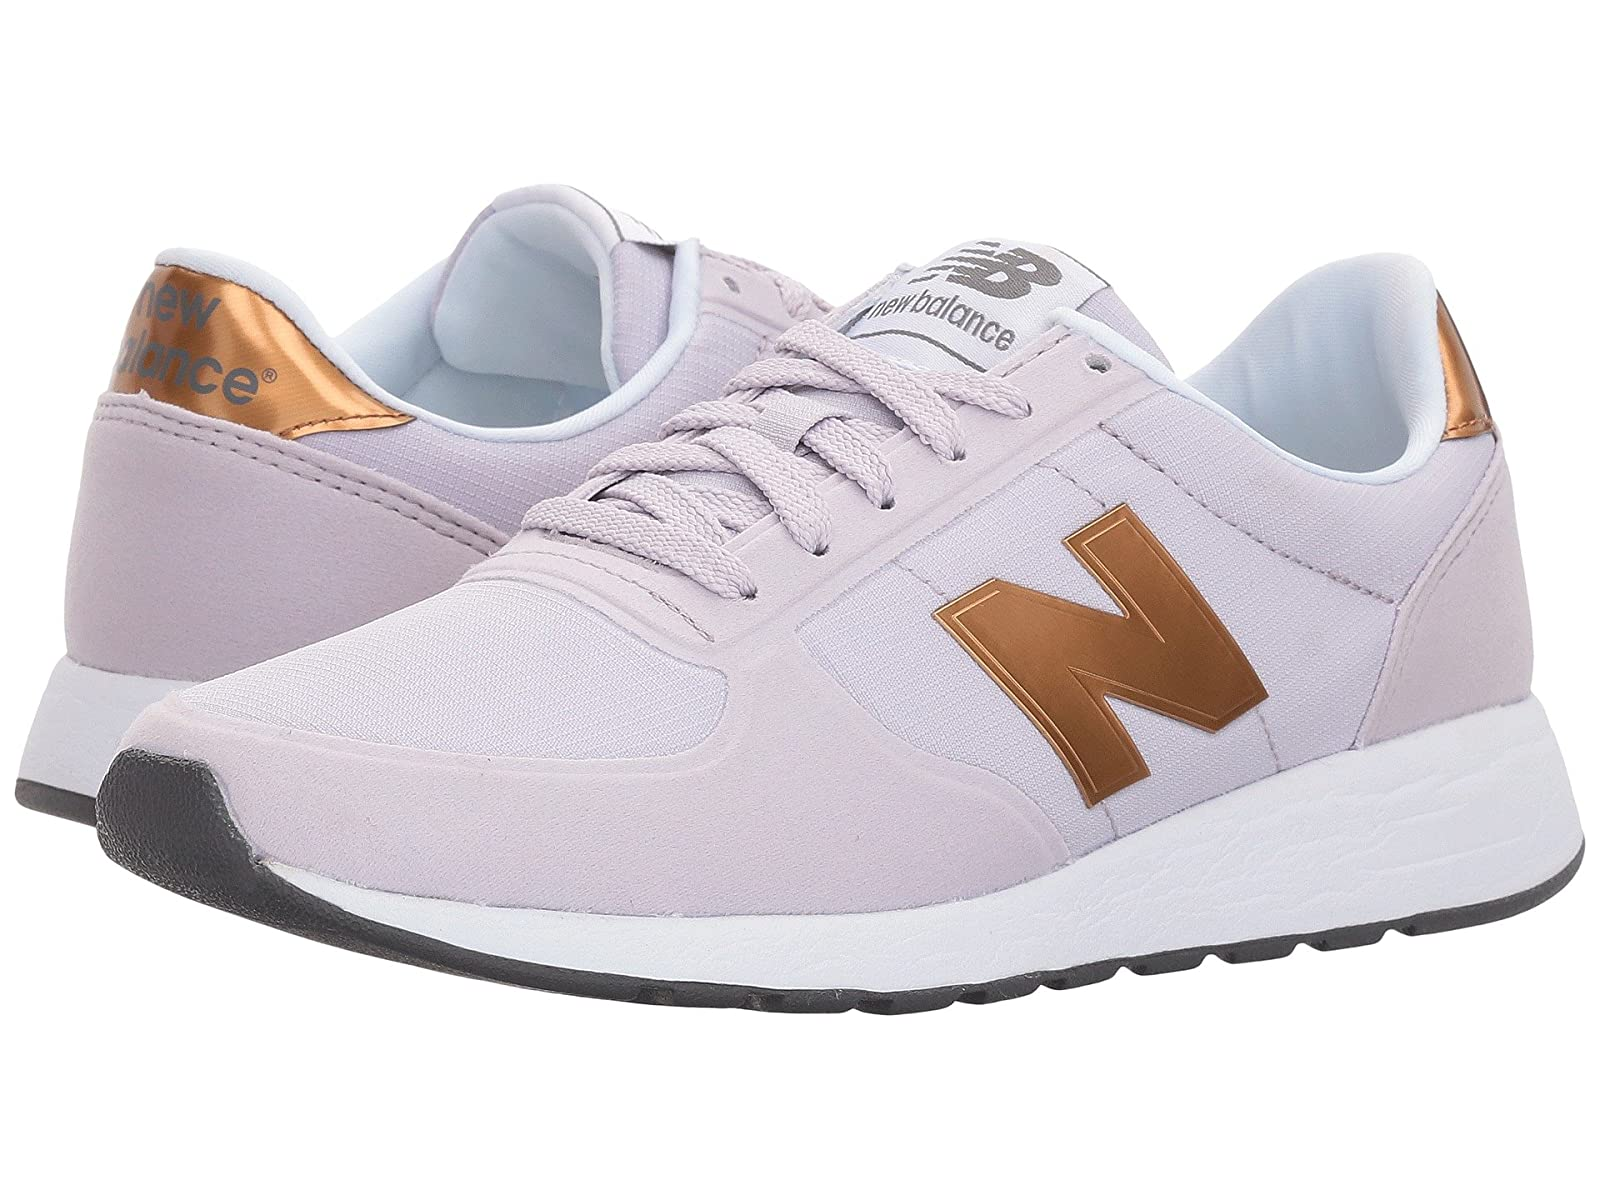 New Balance Classics WS215v1Cheap and distinctive eye-catching shoes